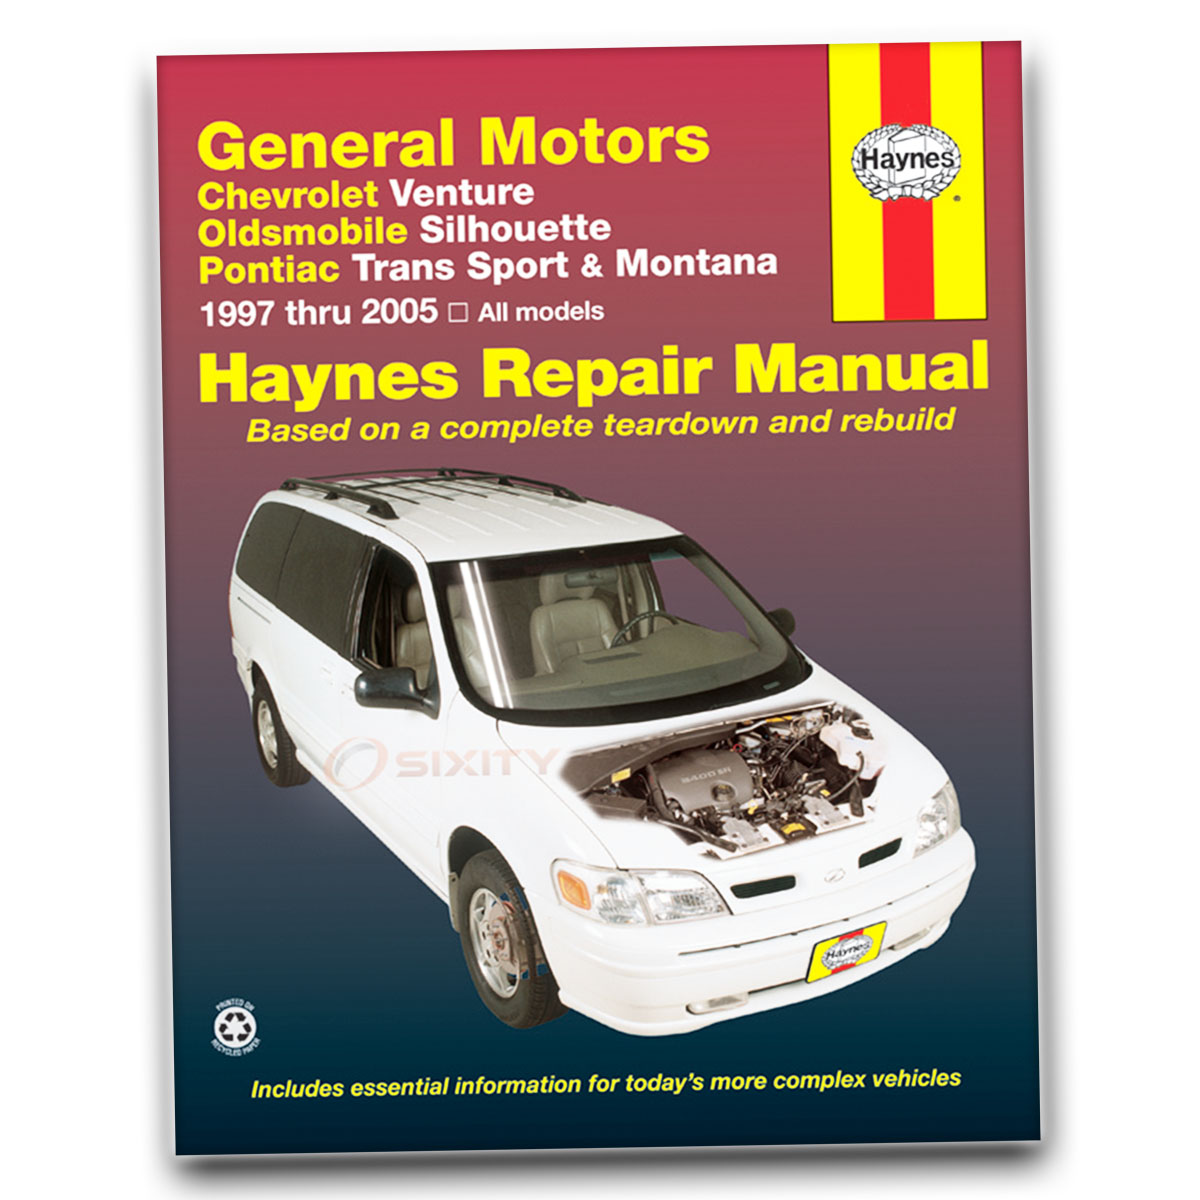 05 pontiac montana sv6 manual today manual guide trends sample u2022 rh brookejasmine co 2004 Pontiac Montana 2006 pontiac montana sv6 owner's manual